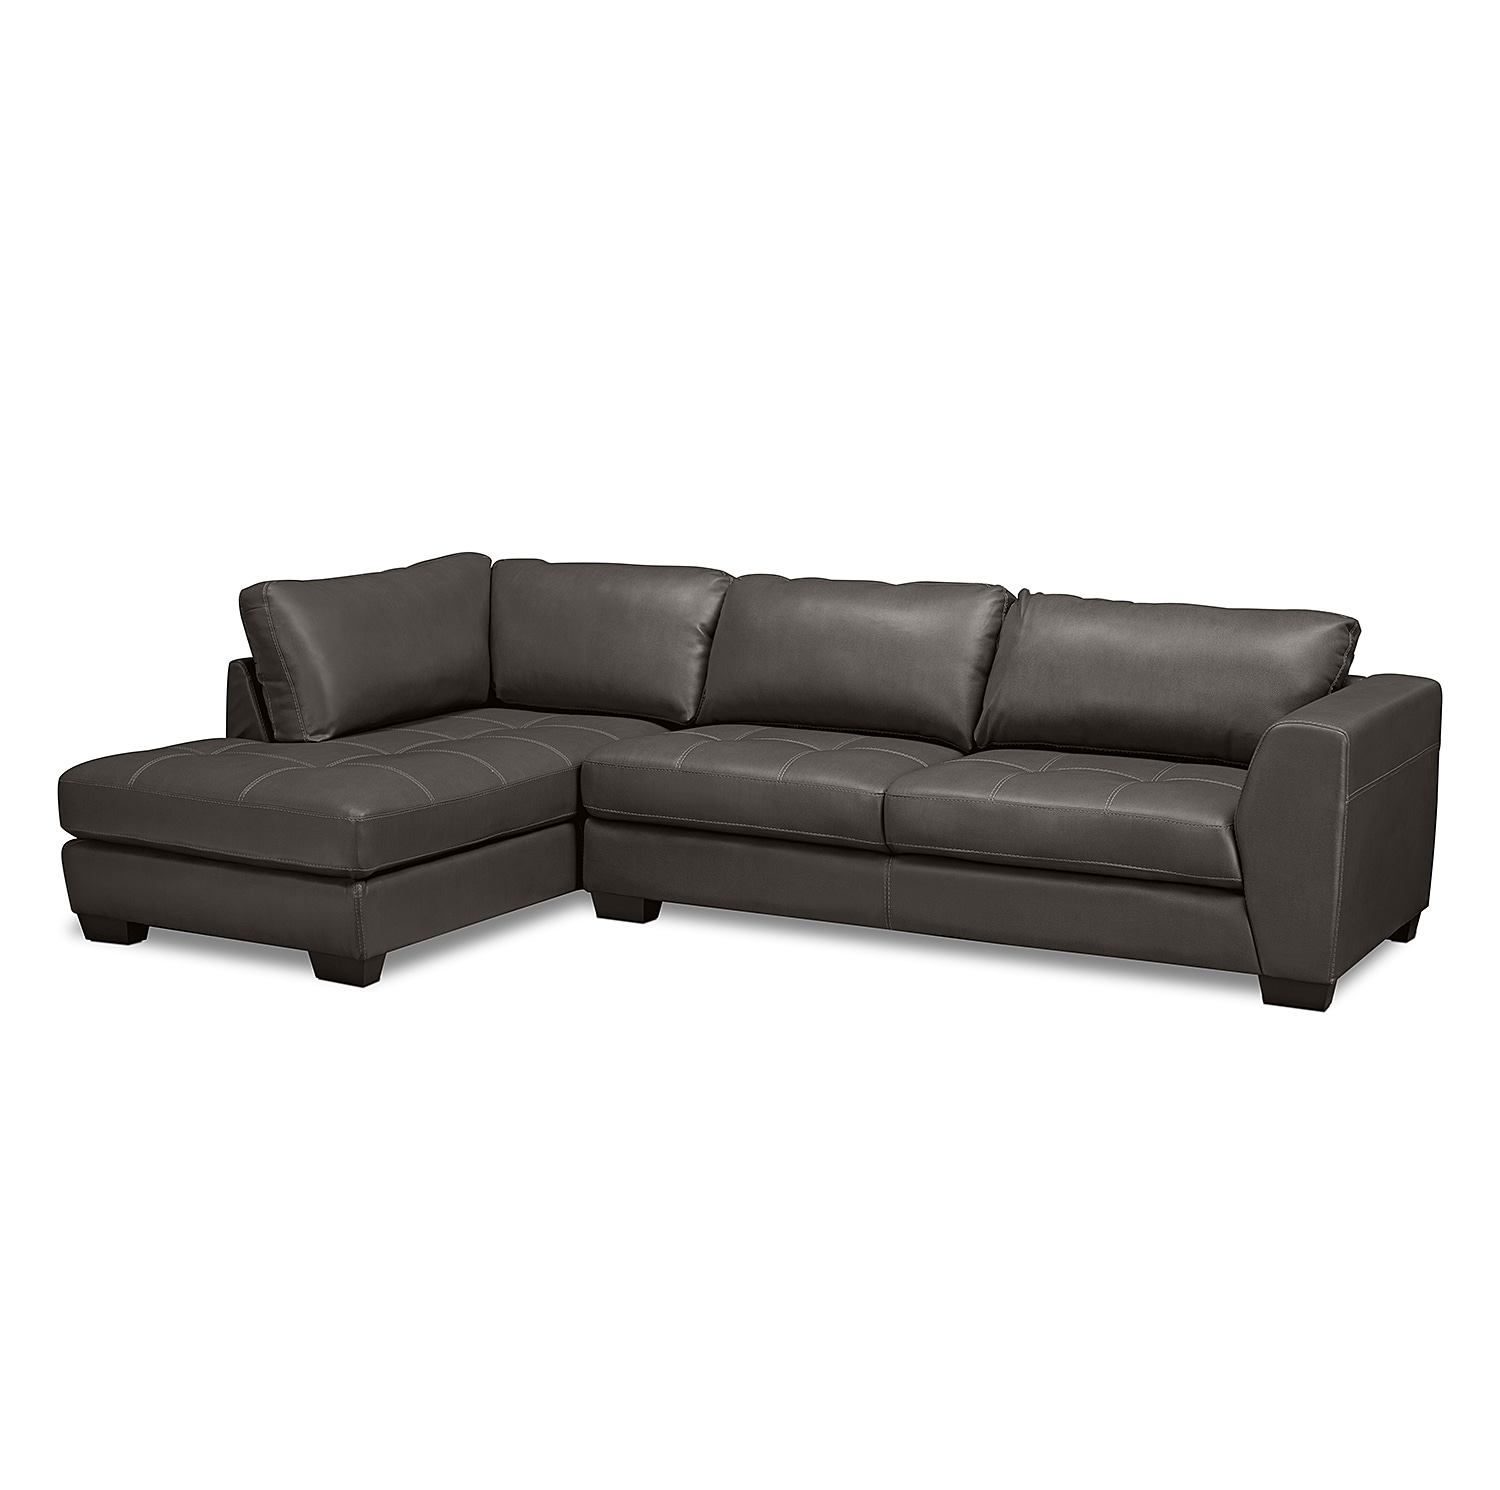 Ciera Iv Leather 2 Pc Sectional Value City Furniture